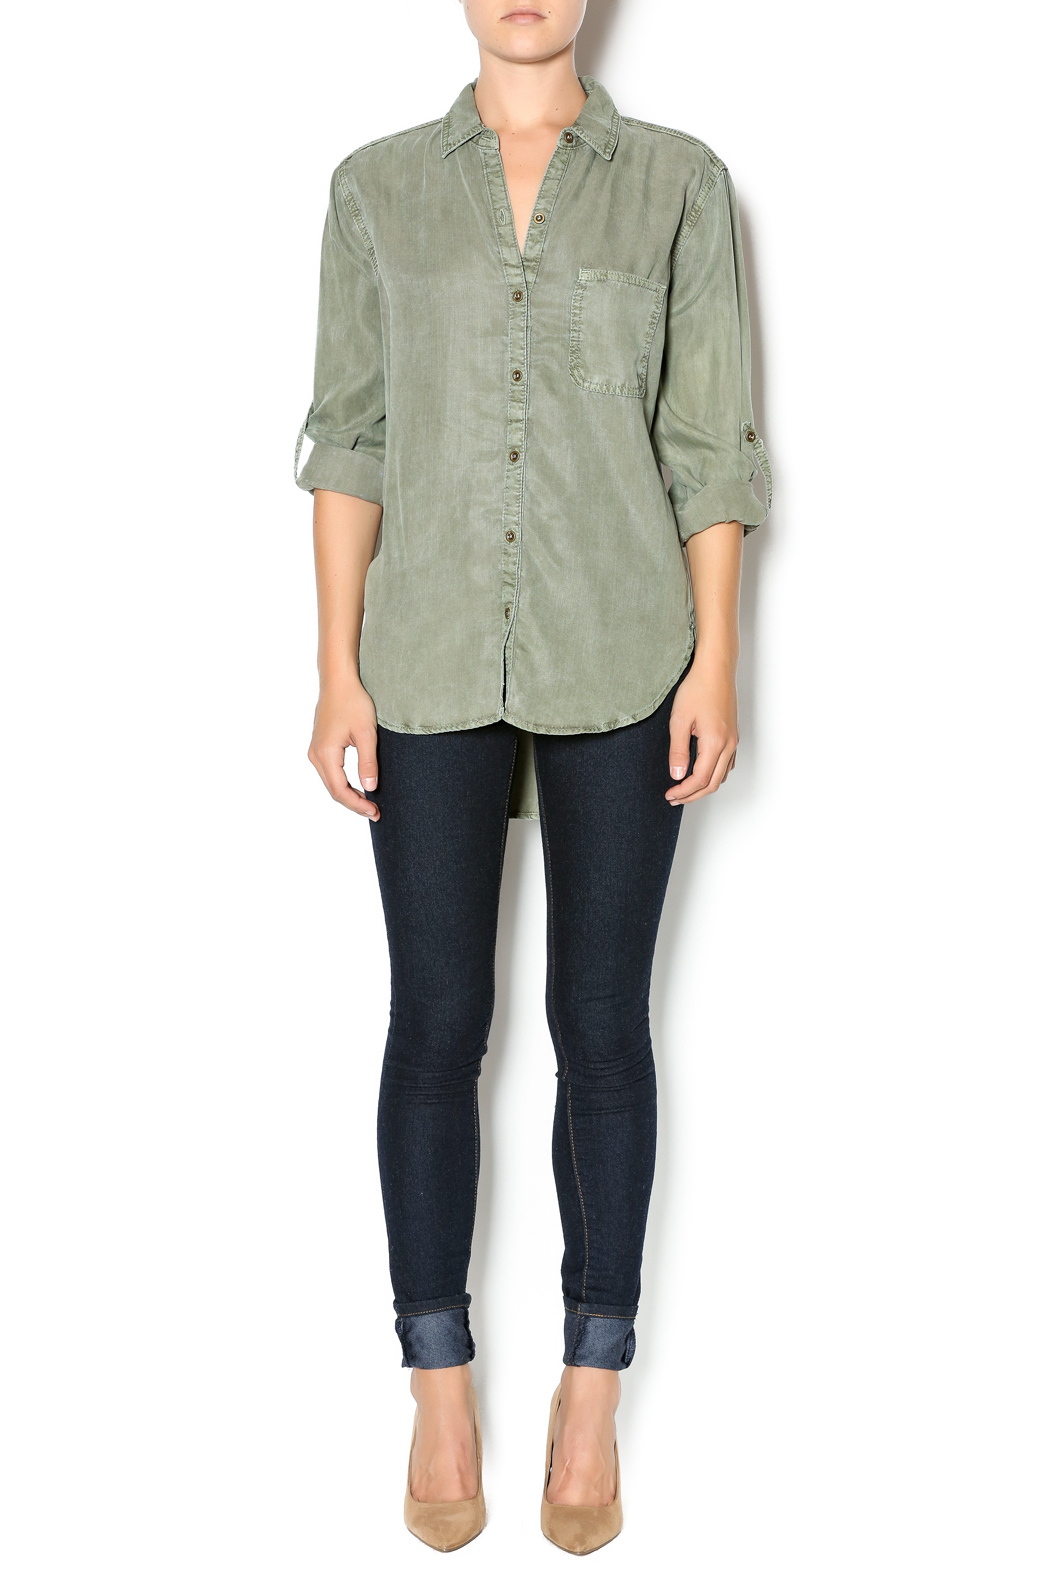 Sneekpeak Olive Button Down Shirt From Miami By Allie Chica